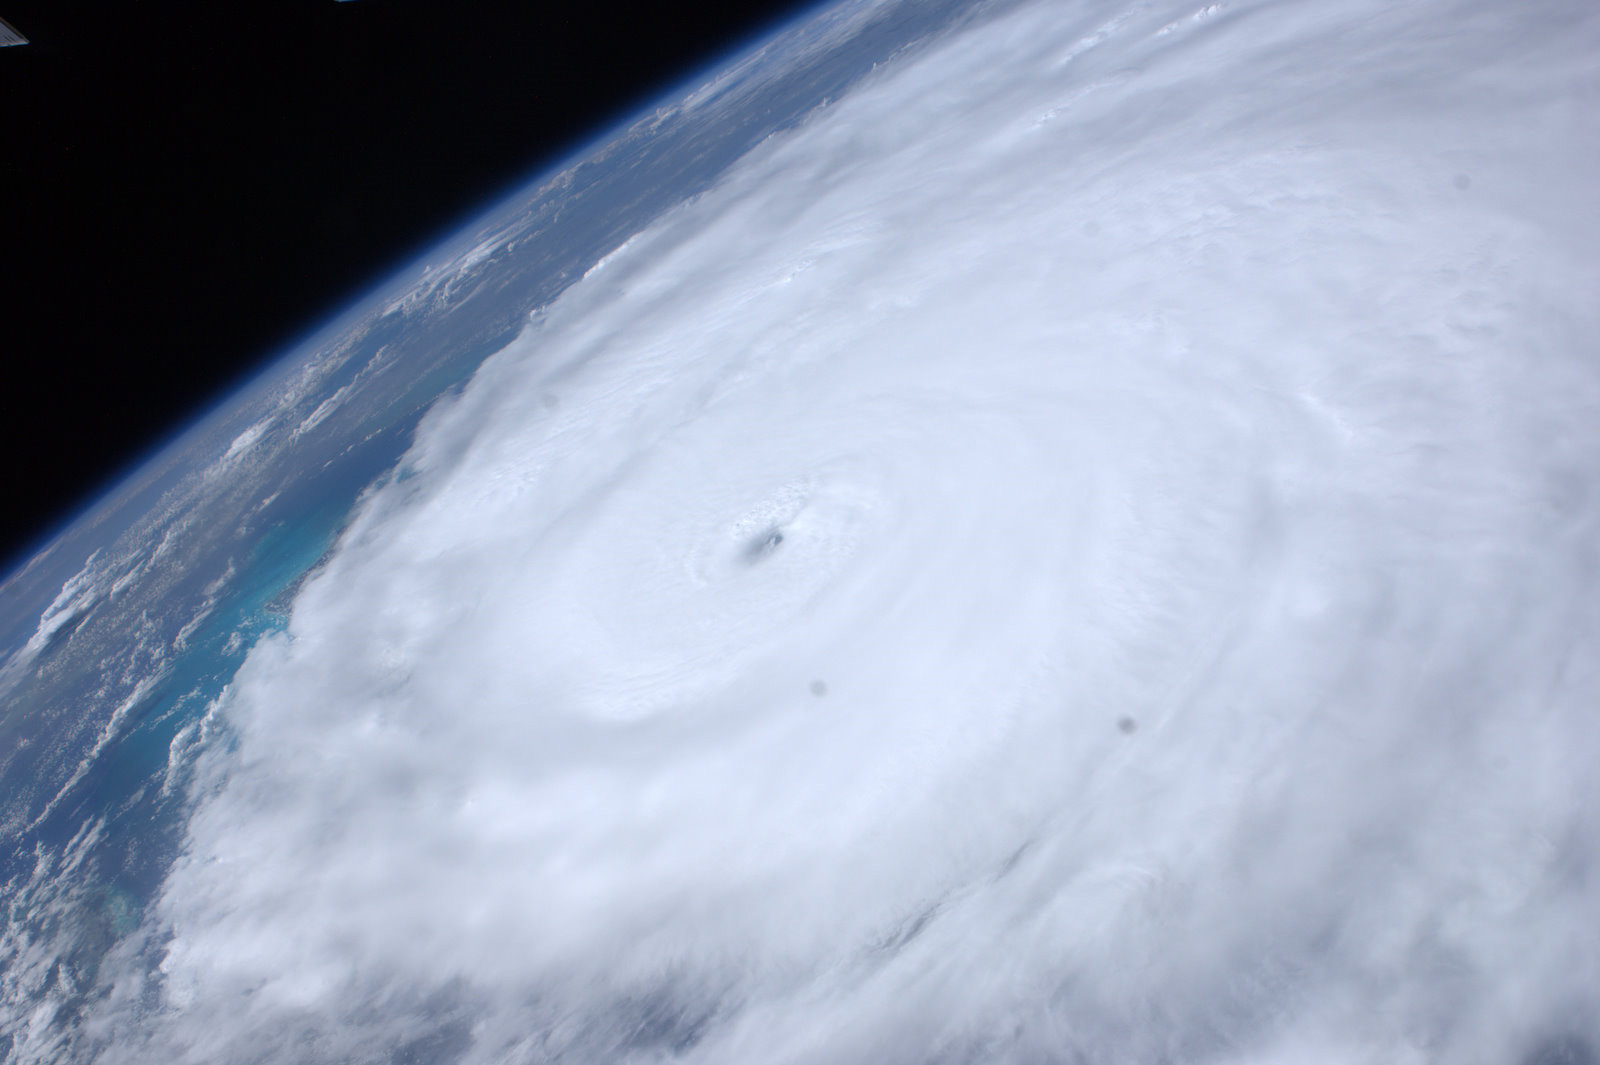 Irene from Space, Retired Shuttles and More